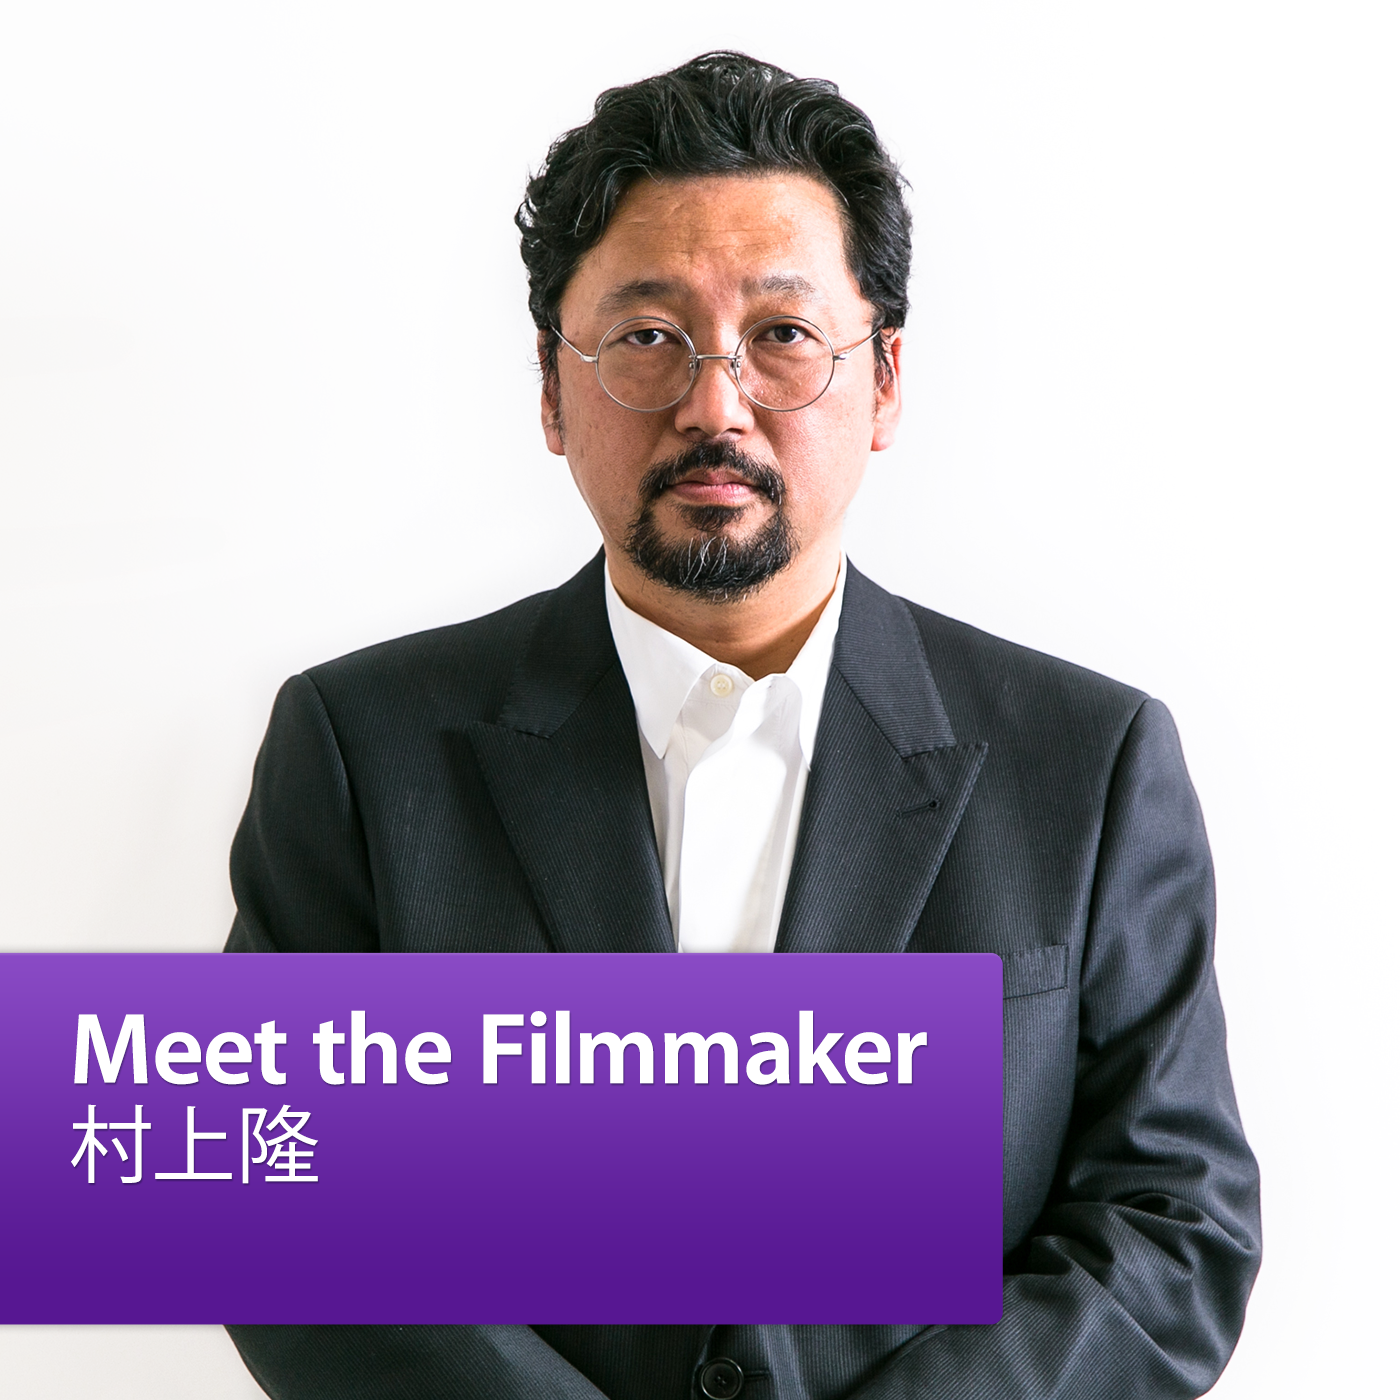 村上隆: Meet the Filmmaker